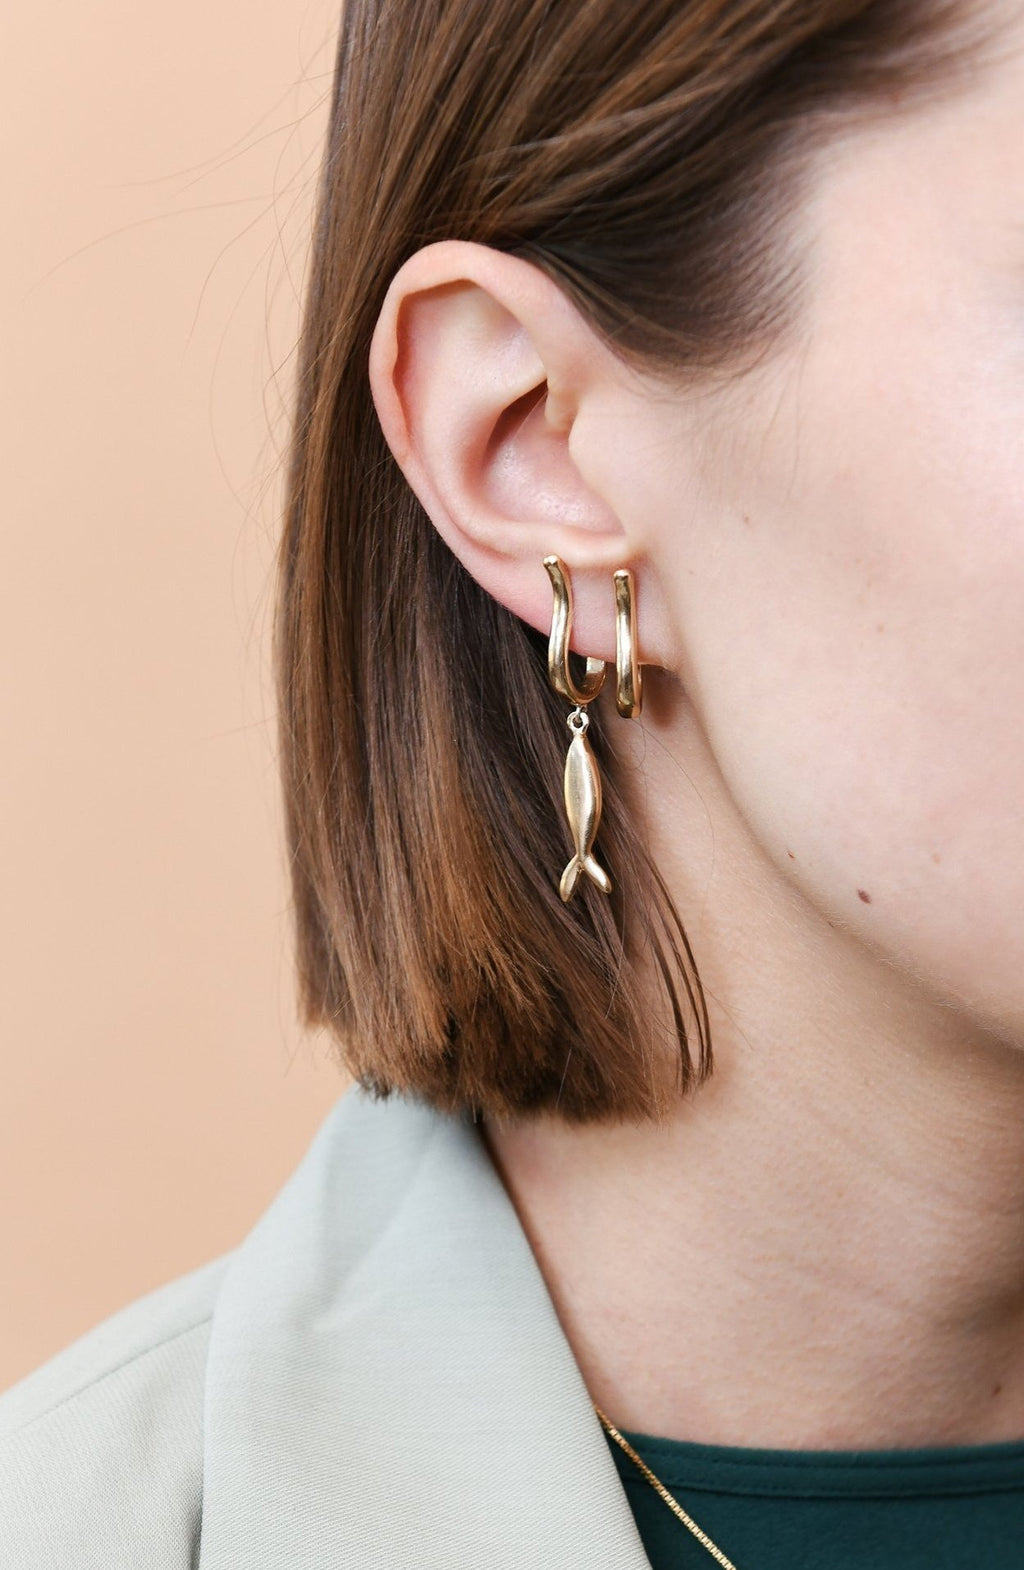 SUMMER AFTERNOON EARRINGS